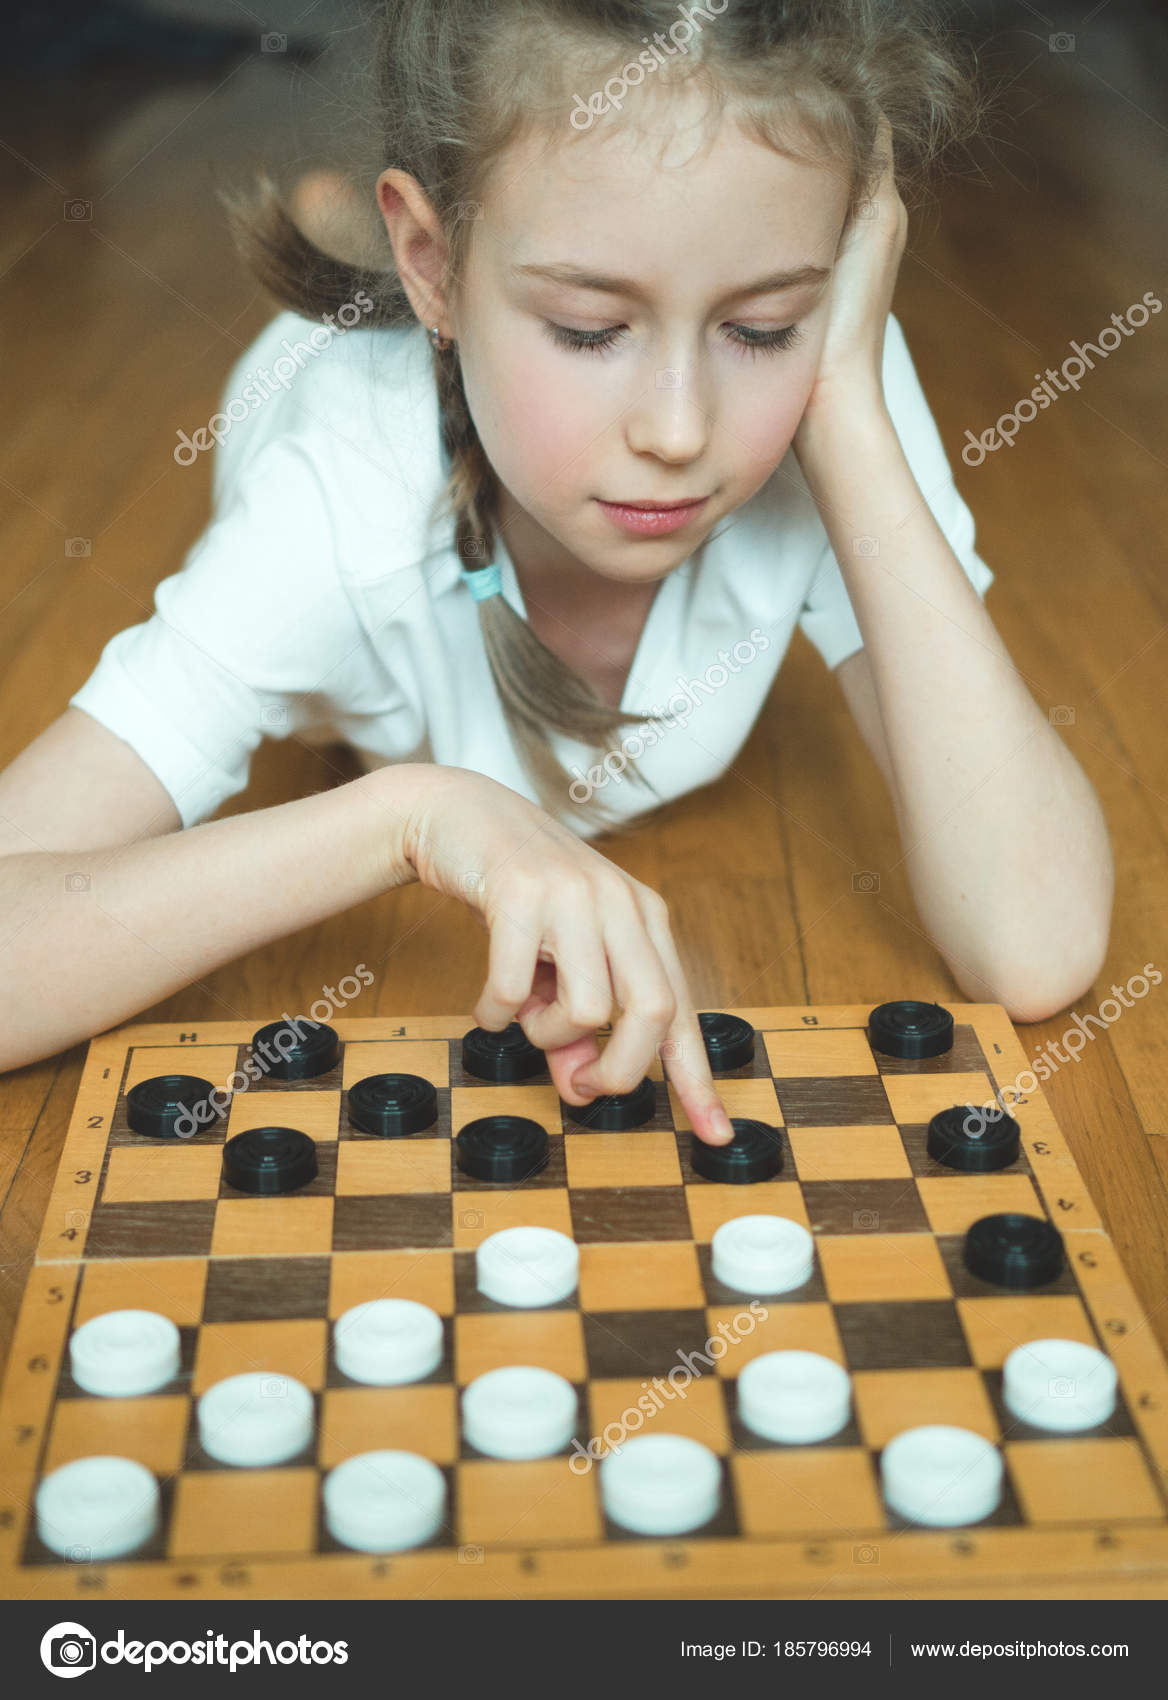 Little Cute Girl Playing Checkers Board Game Stock Photo